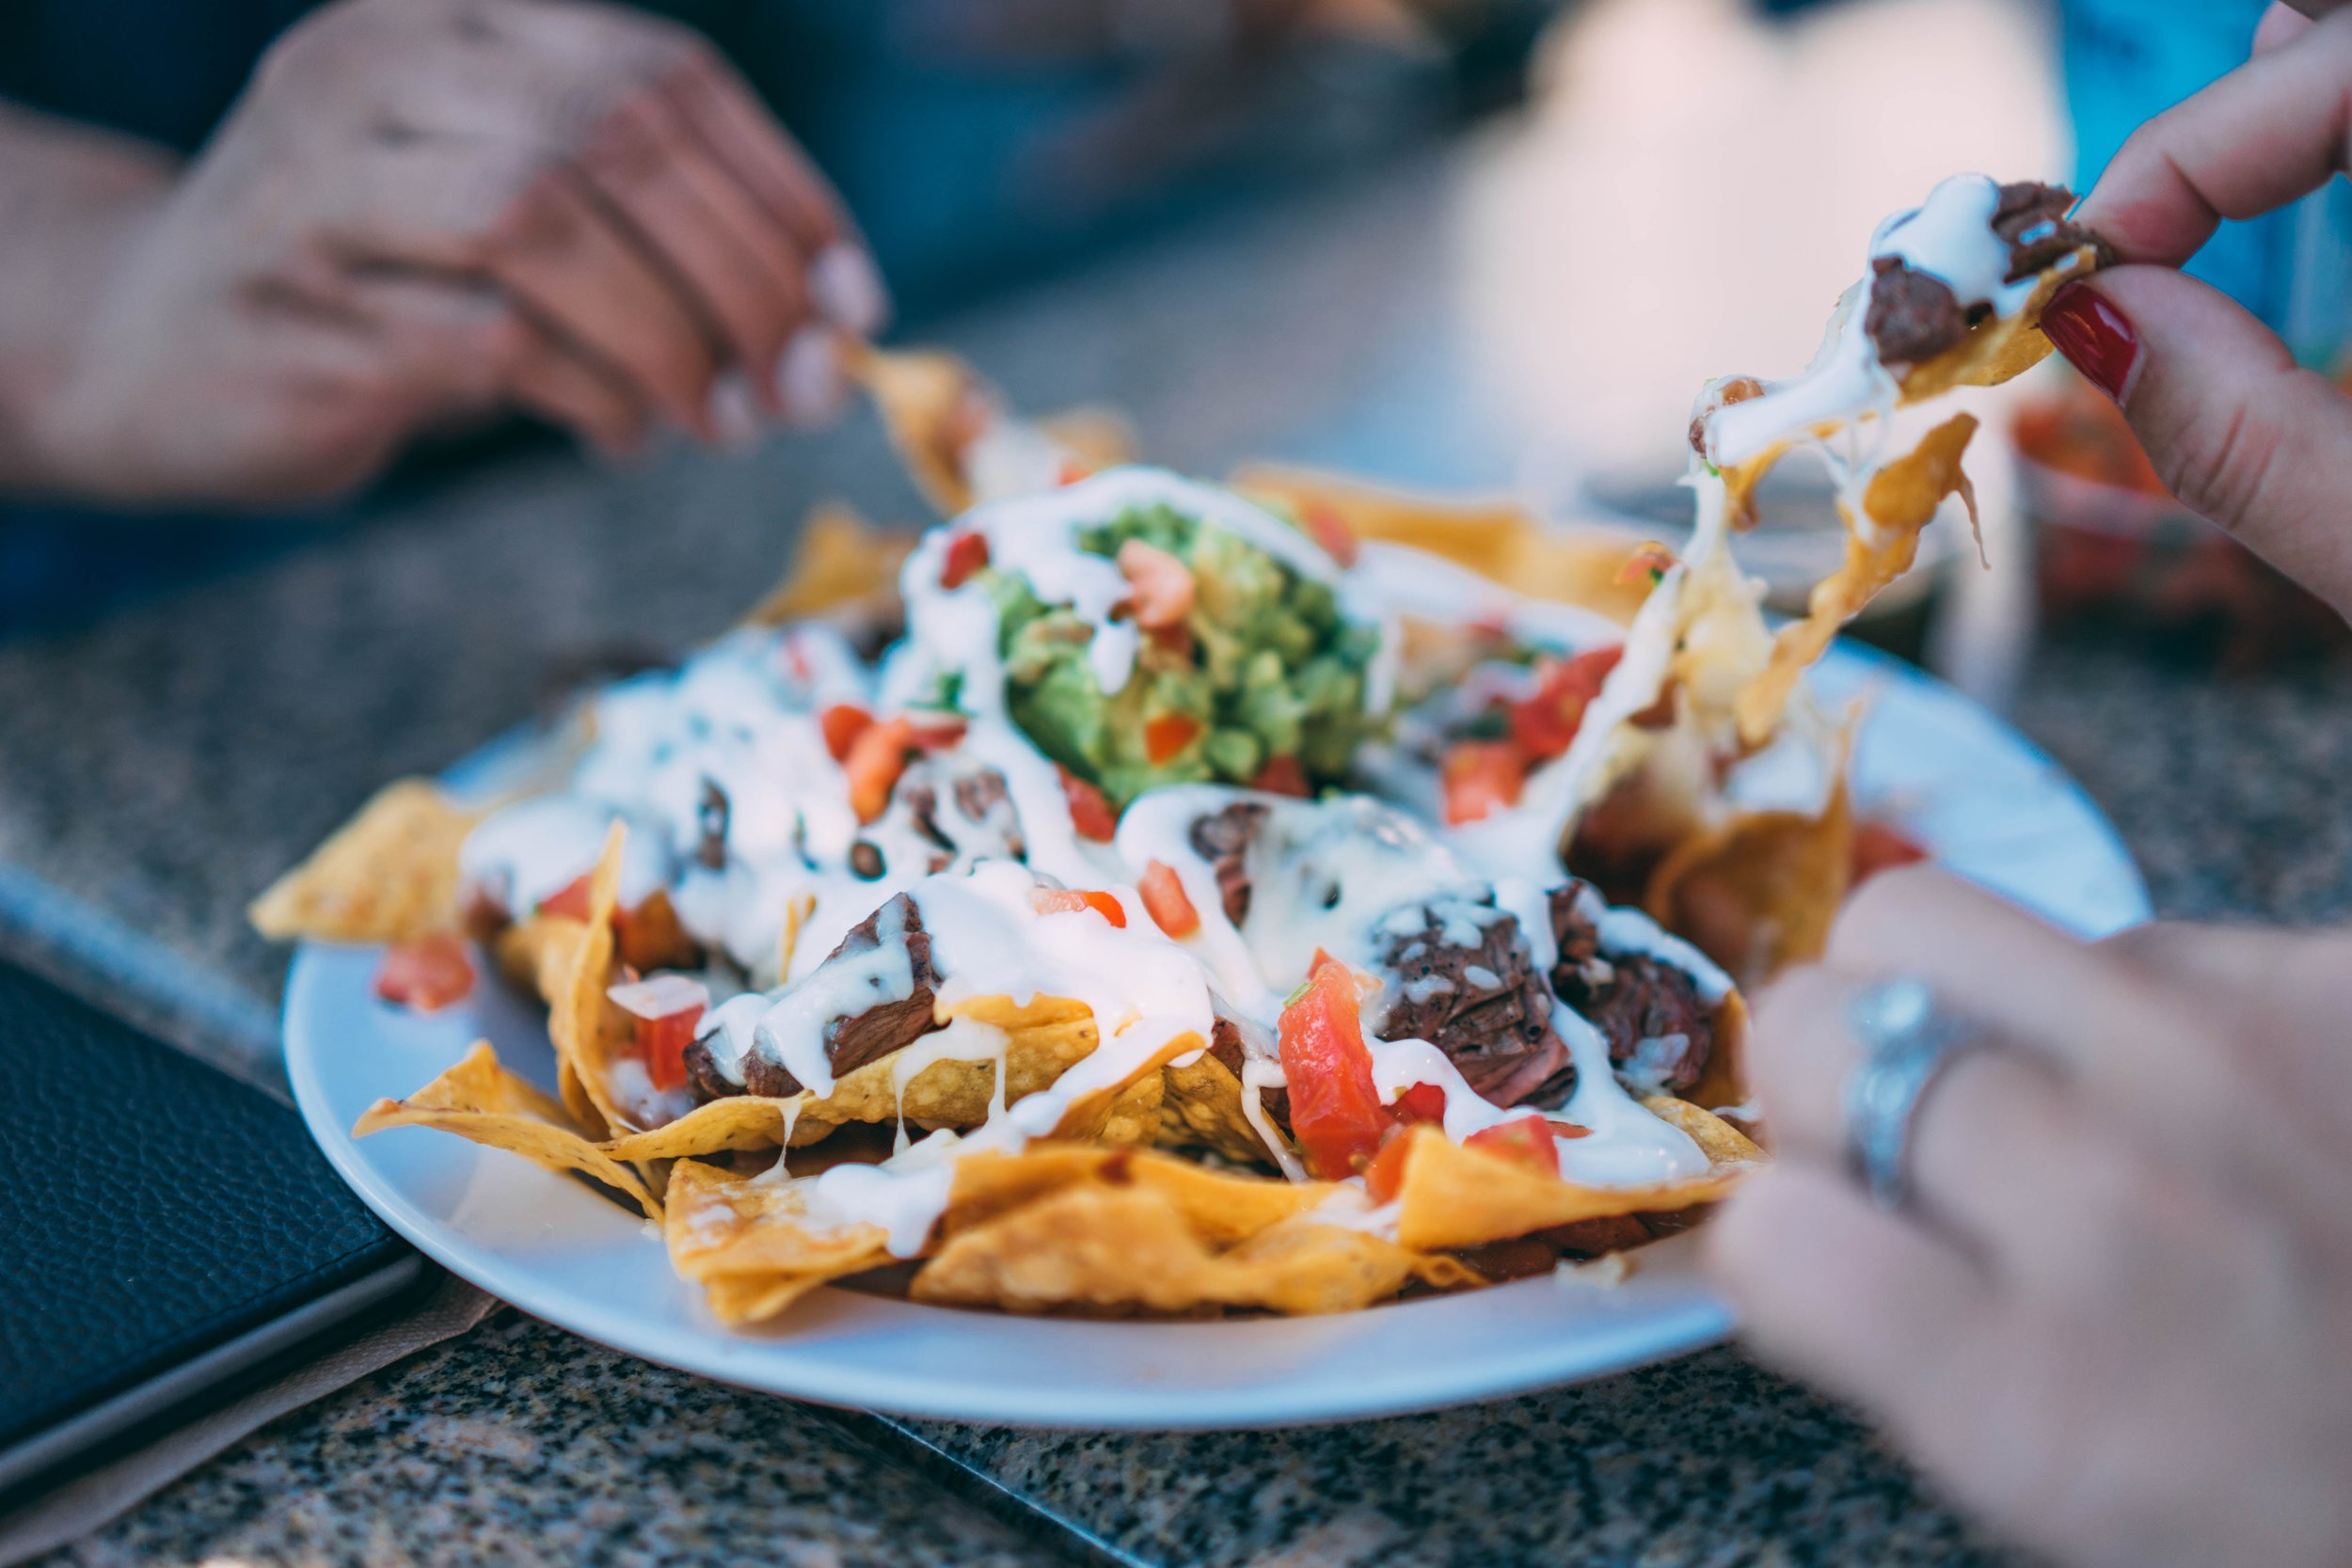 Even if nachos are not the healthiest food choice, having them on the table does not prevent you from stretching.